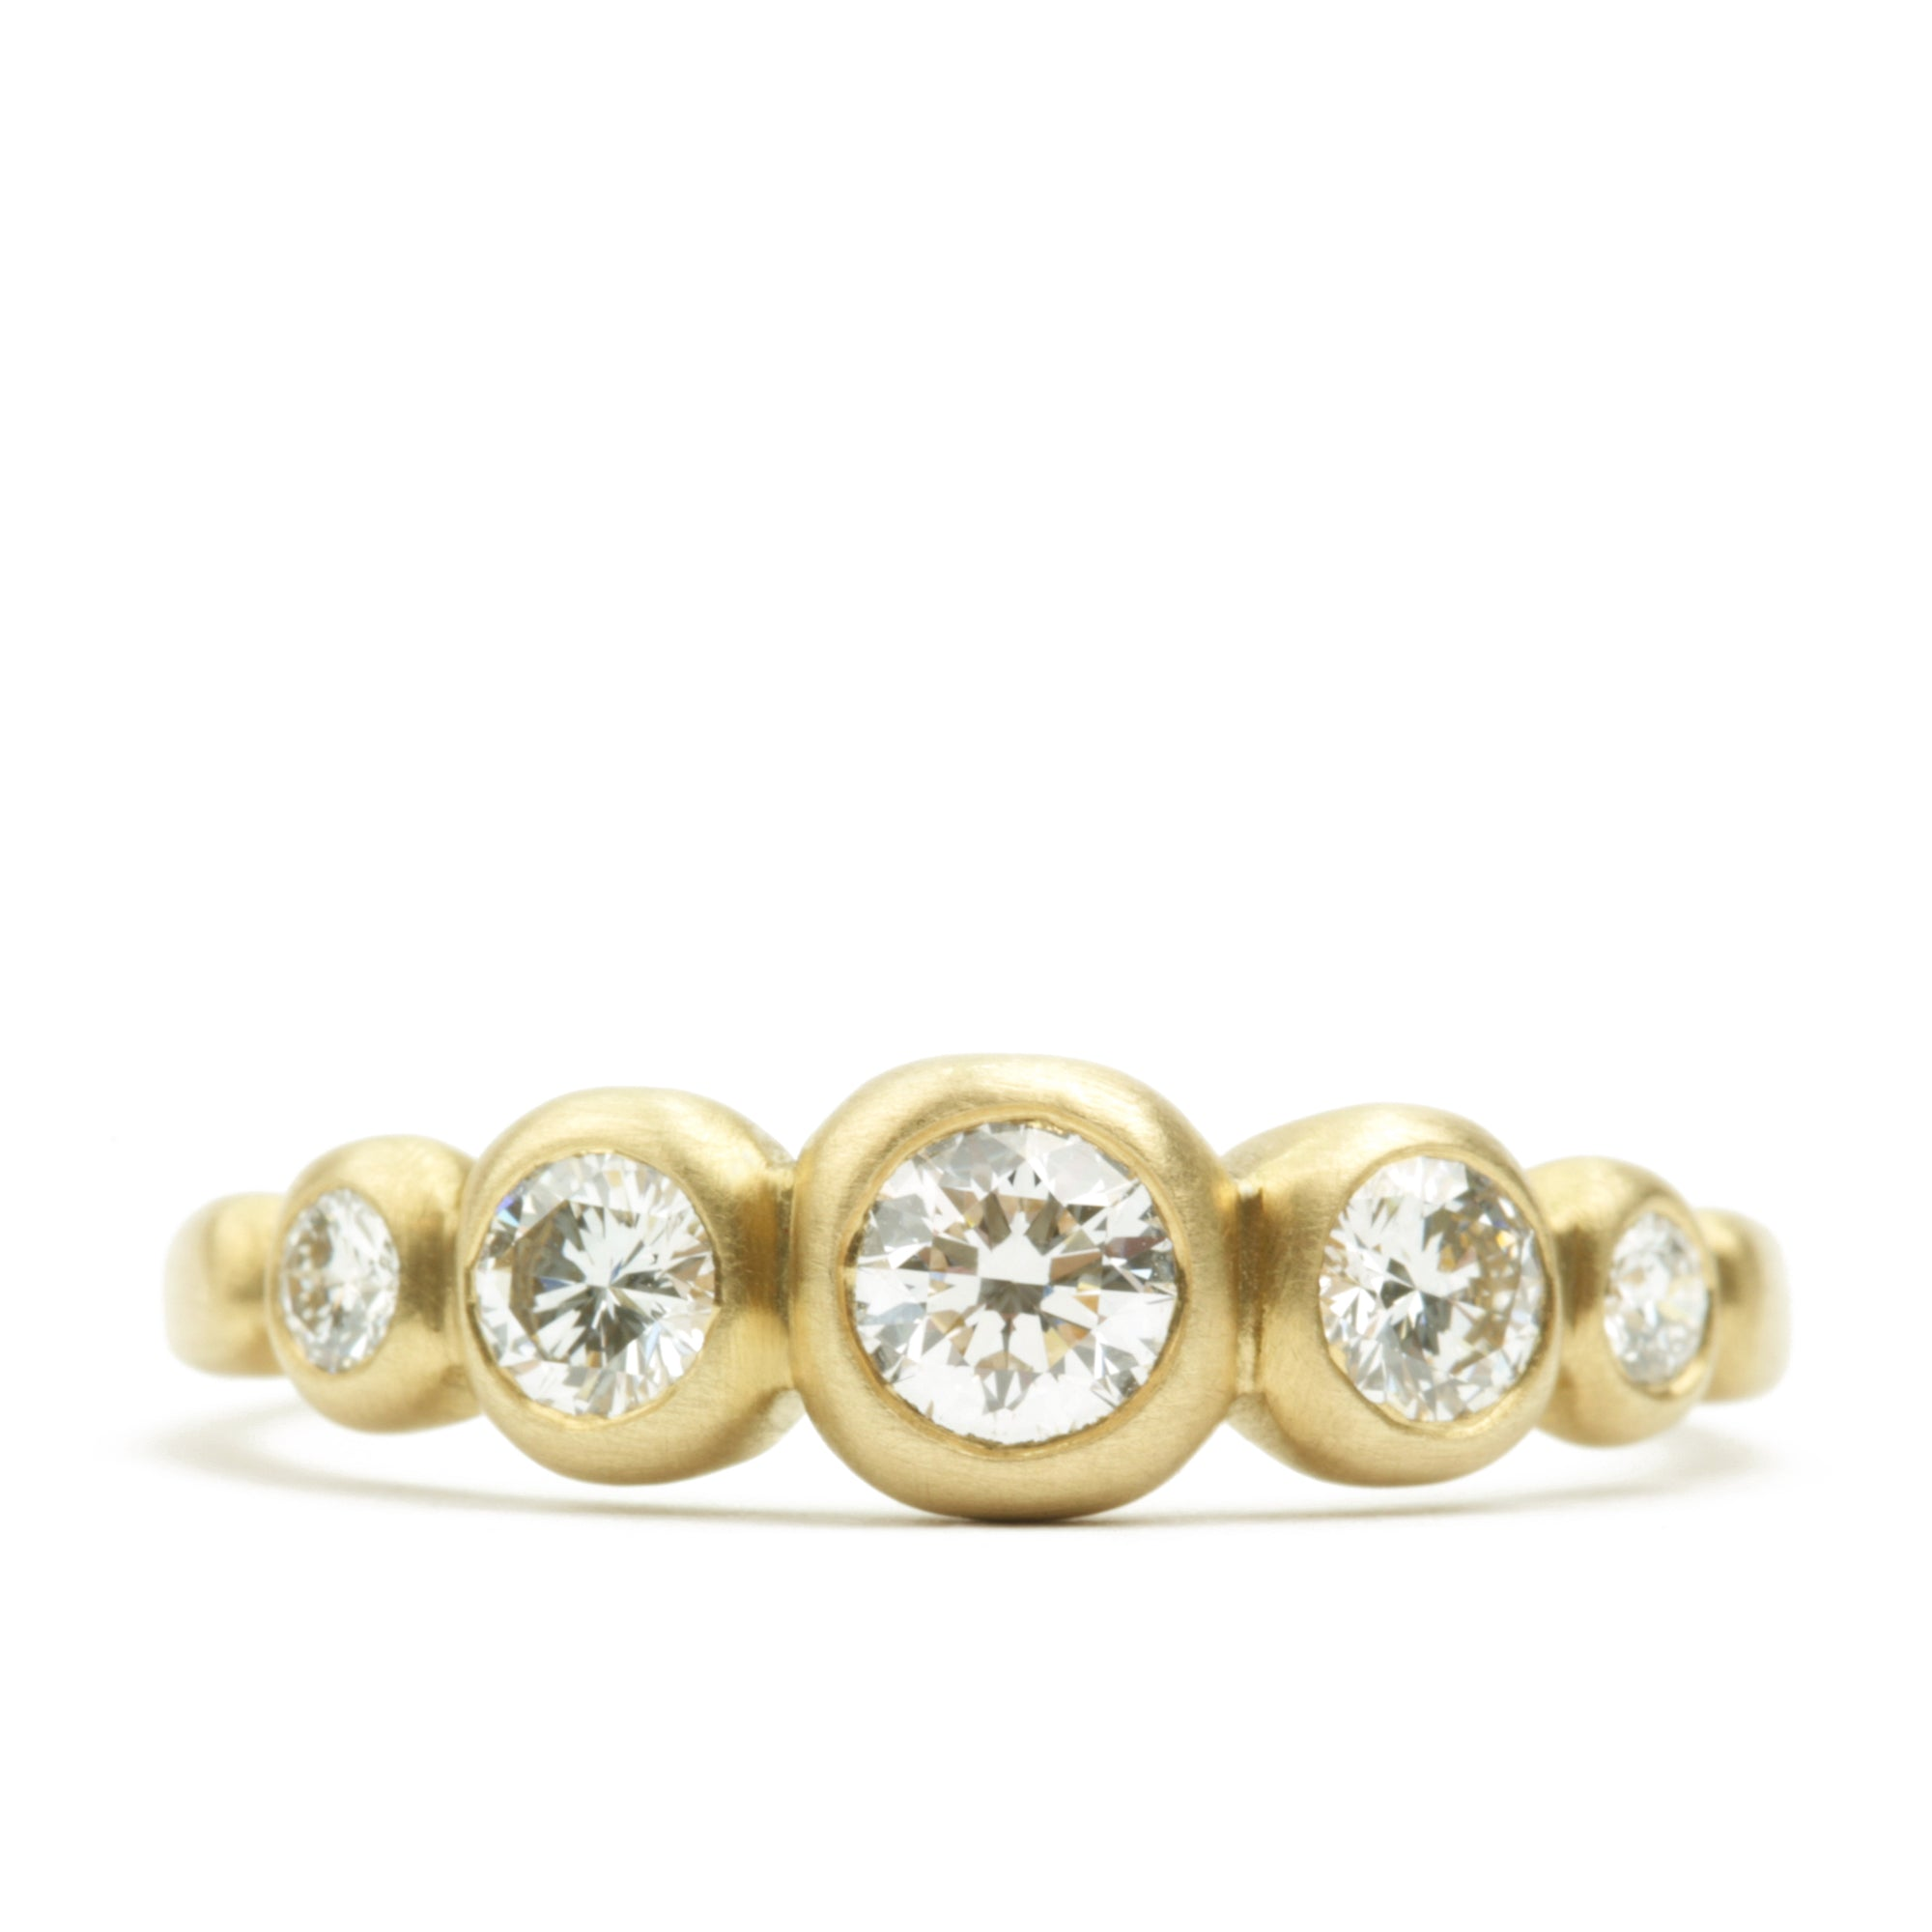 Kima Ring 5 Stone with 1/4 carat diamond center